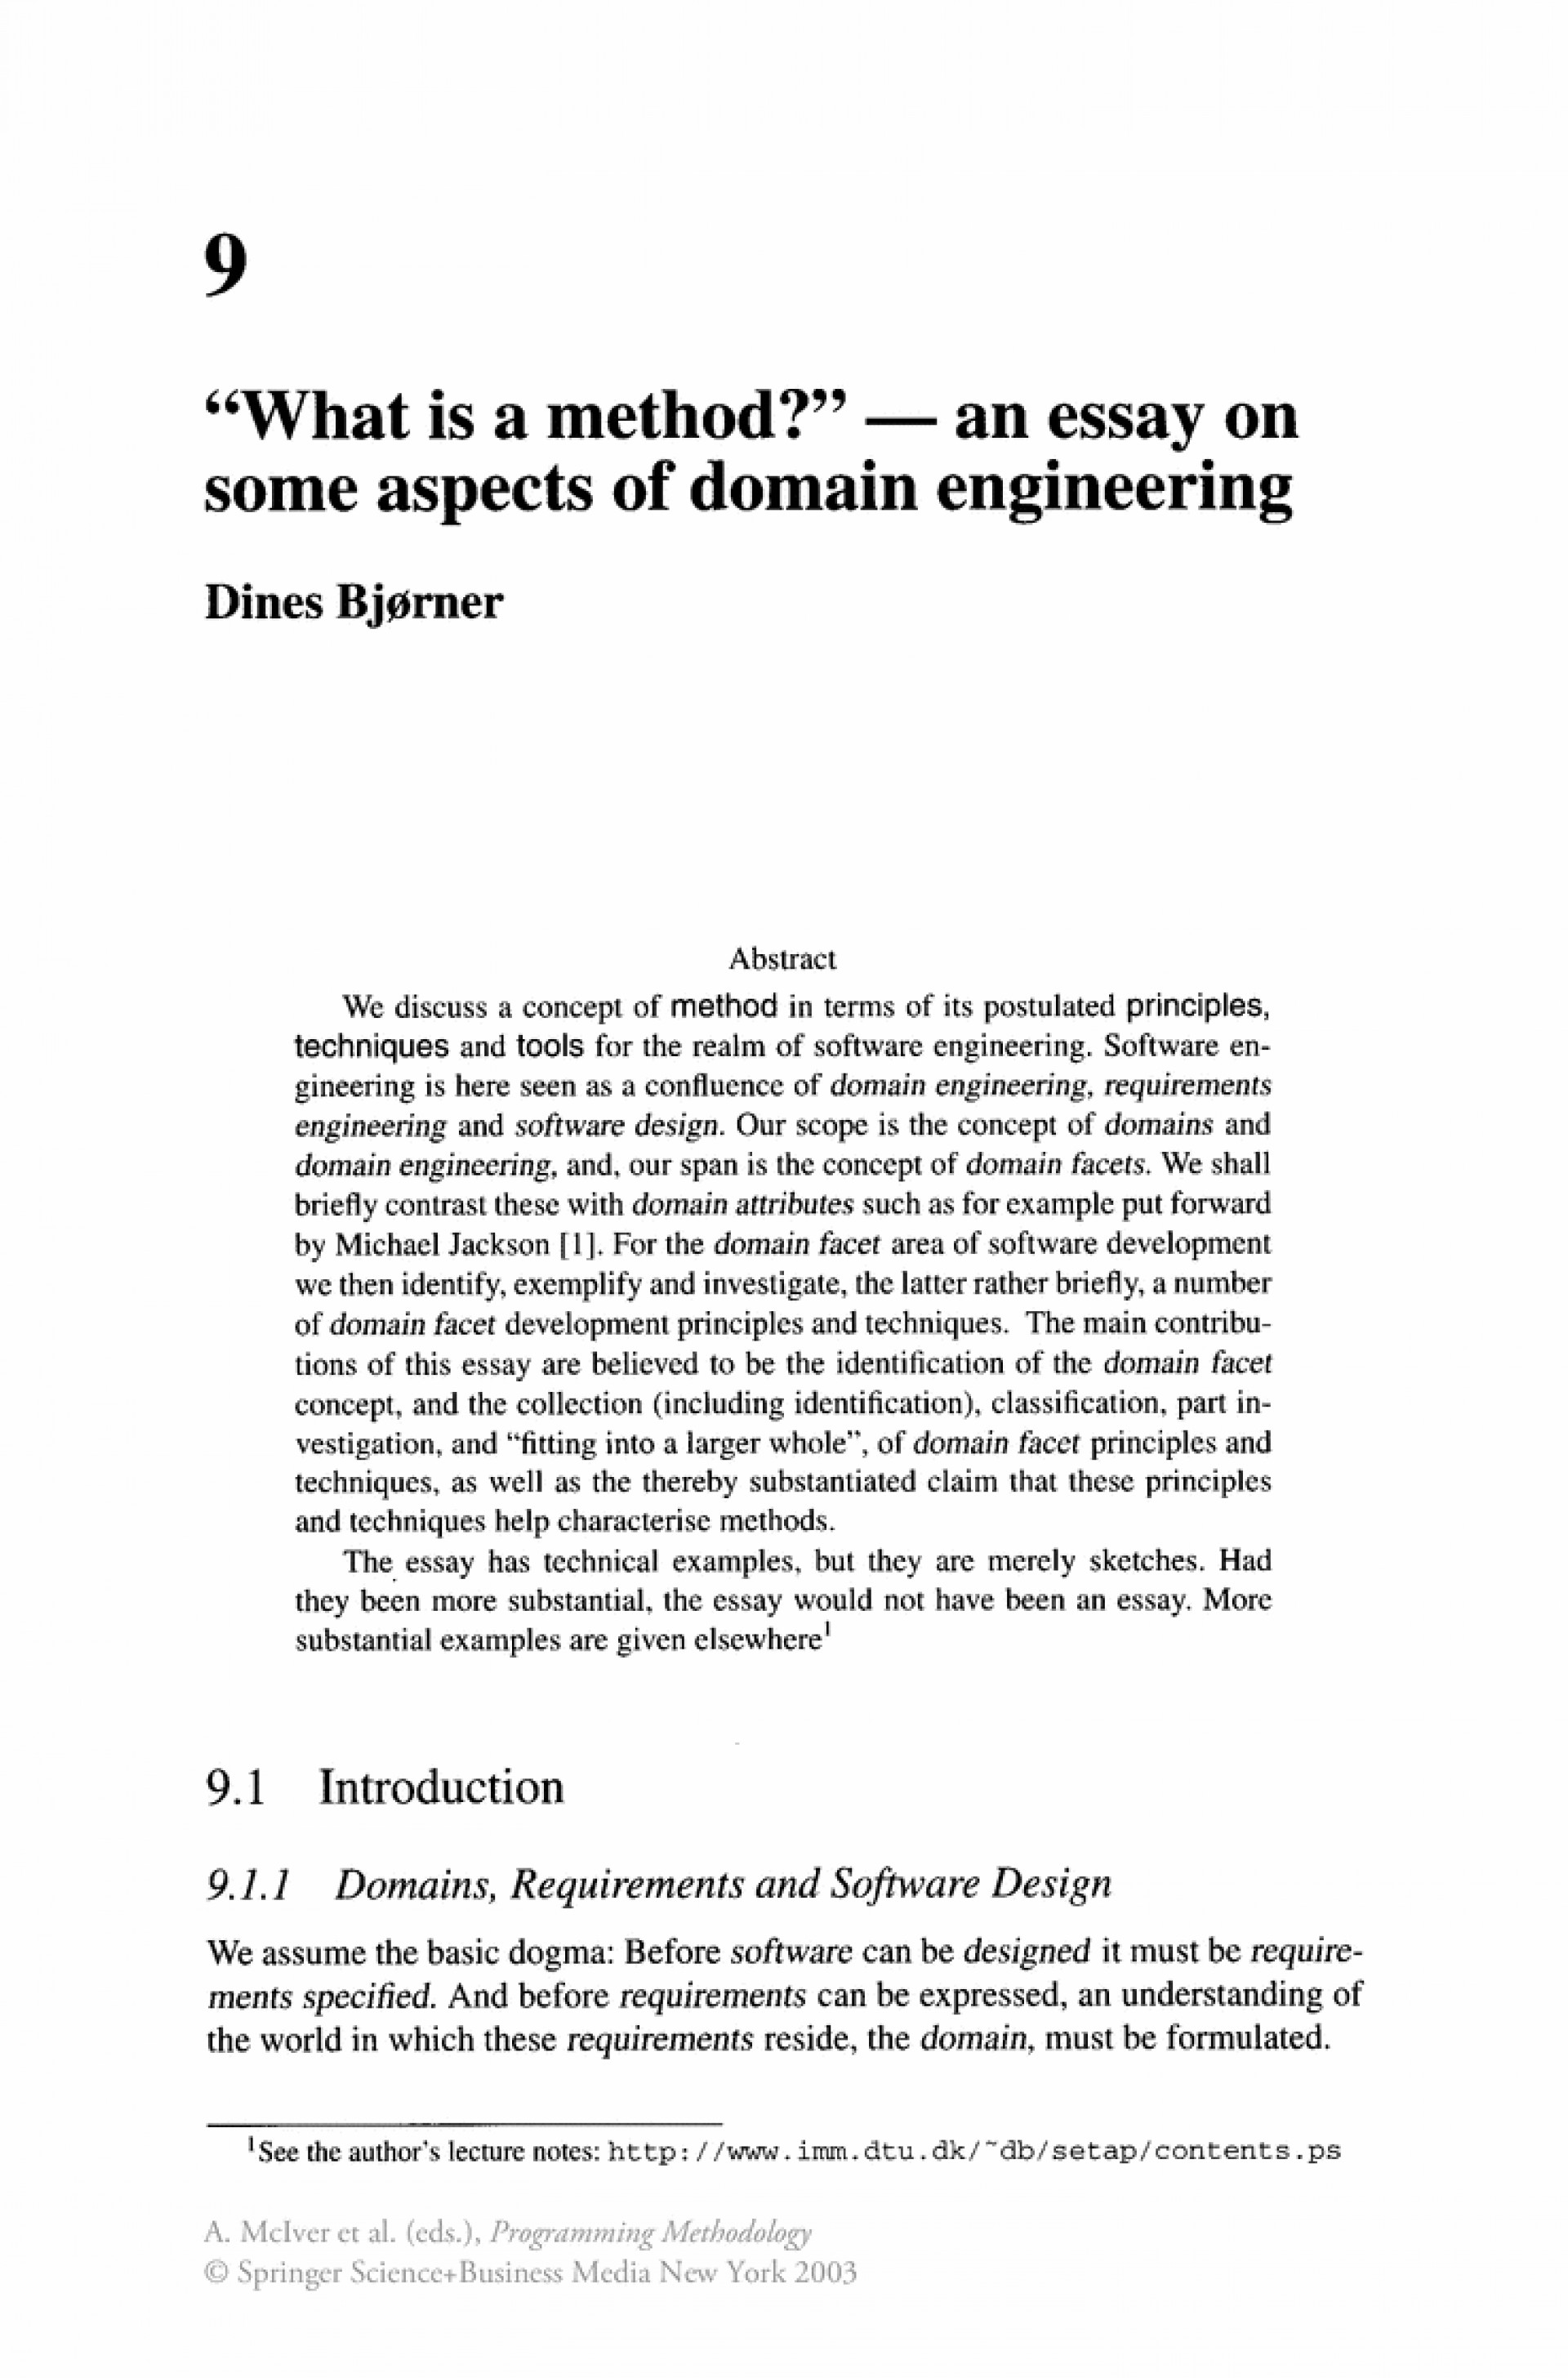 003 Essay Example About Engineering Argumentative On Genetic Sample Paper Technology Essays As Career Disasters Profession Research Pdf Opinion College Life Free Mechanical In Hindi Gattaca Breathtaking Wvu Contest Topics Texas A&m Length 1920